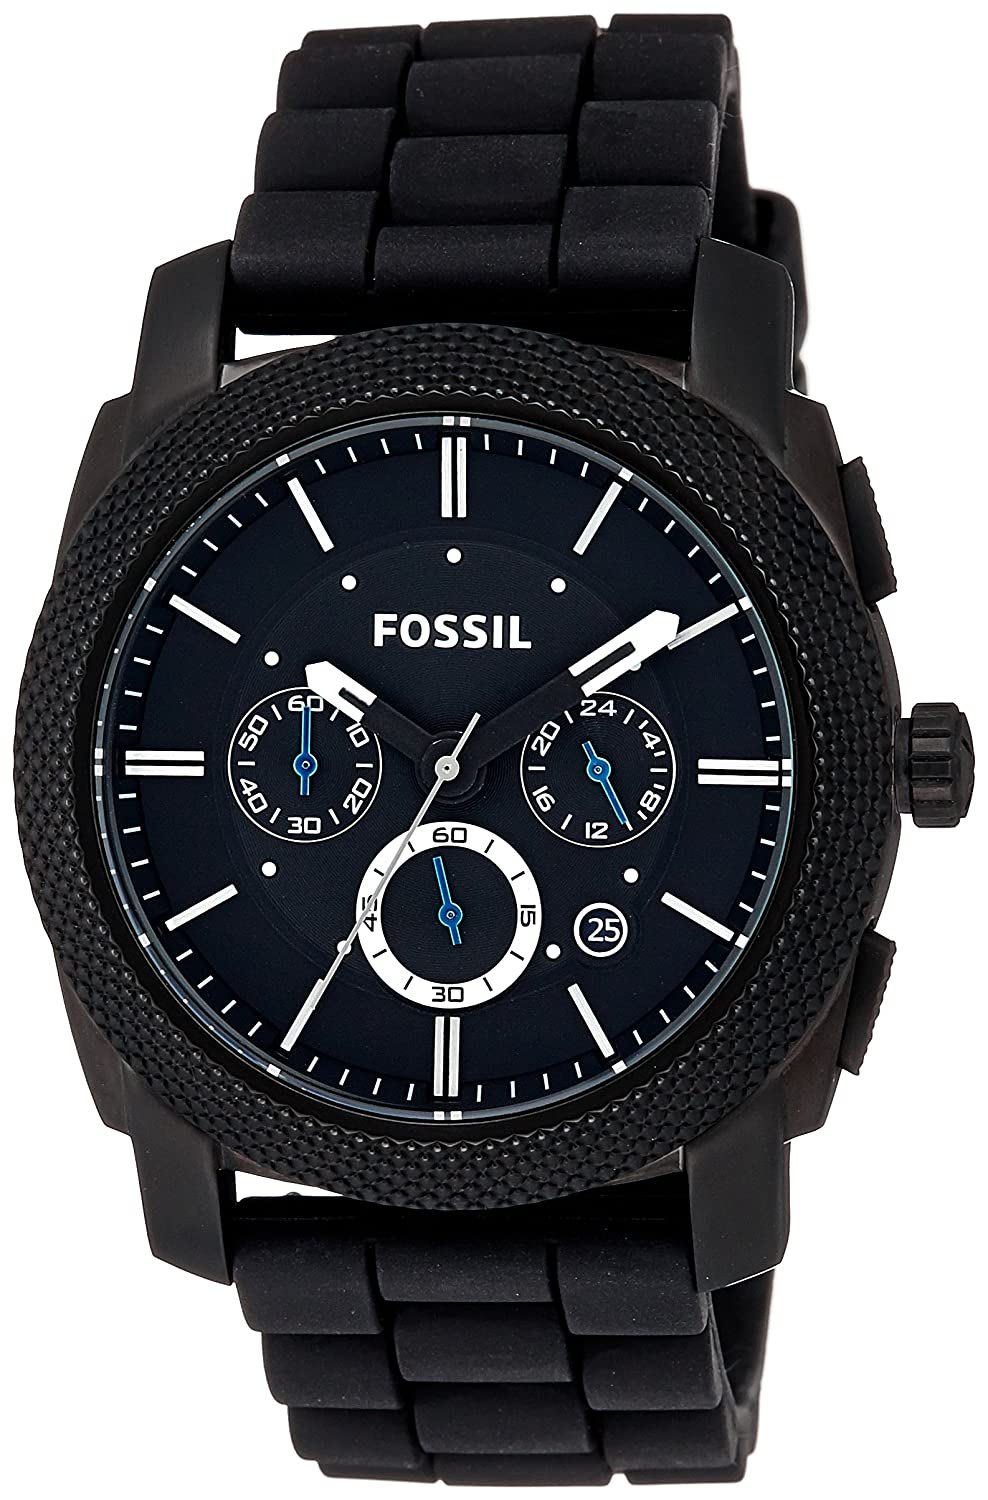 buy fossil machine chronograph analog black dial men s watch buy fossil machine chronograph analog black dial men s watch fs4487 online at low prices in amazon in